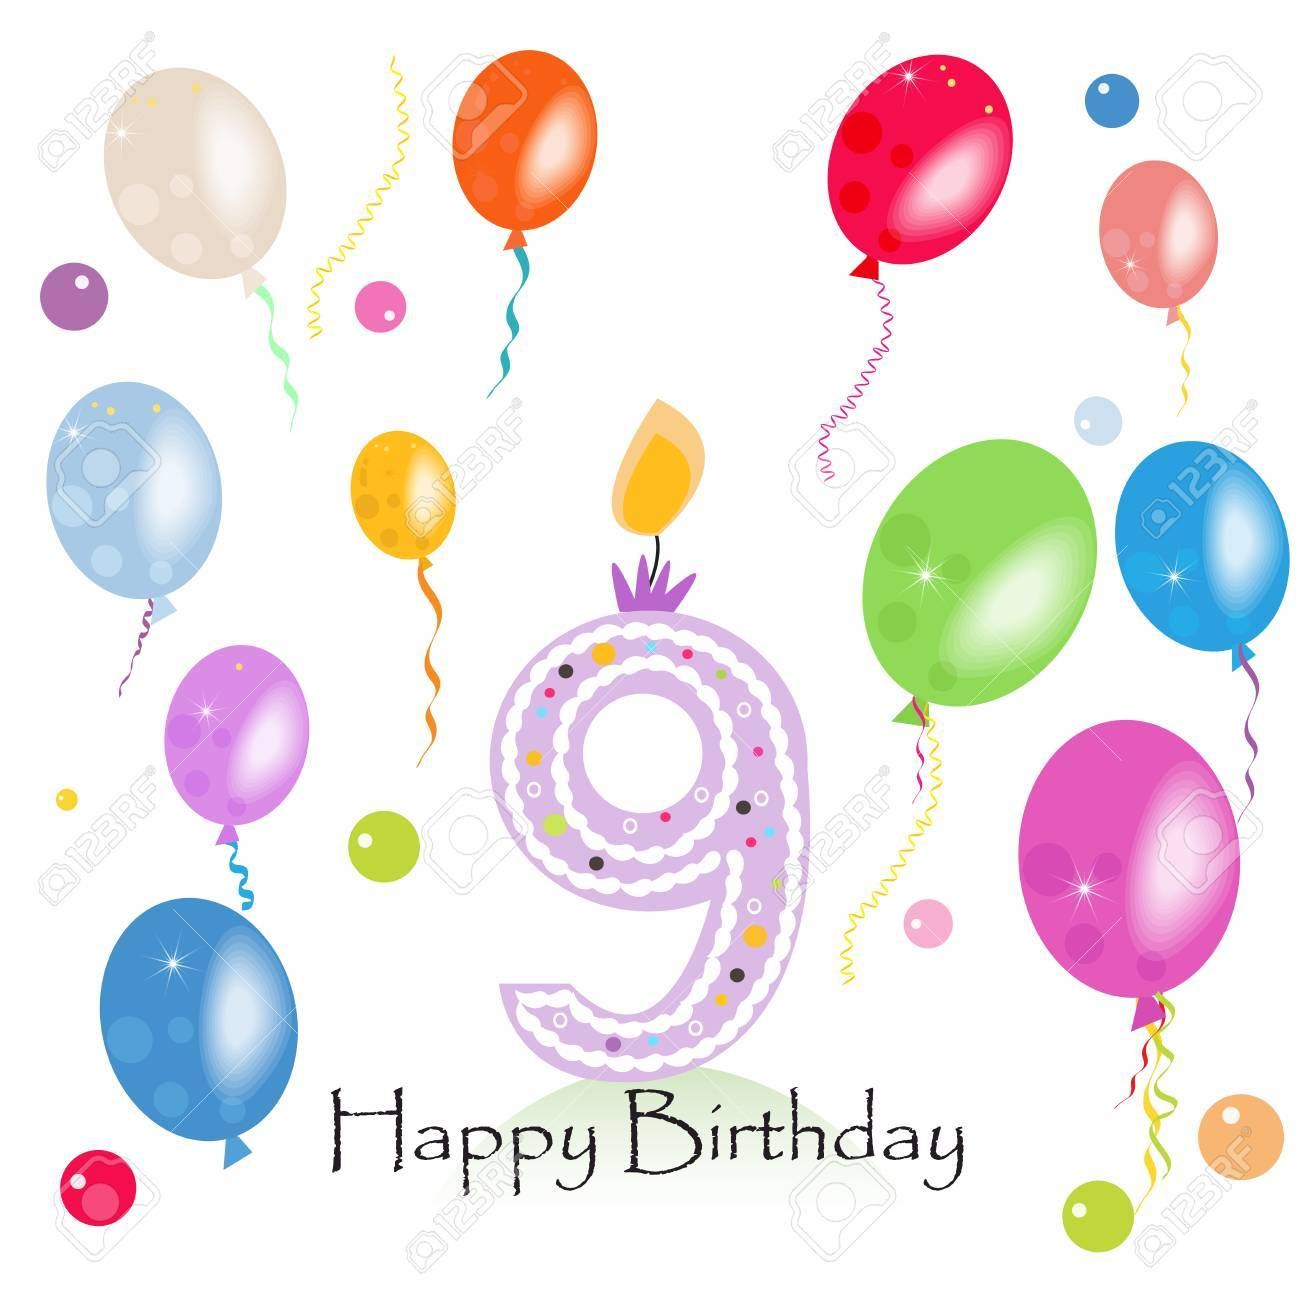 Happy Ninth Birthday Candle Vector With Colorful Confetti And Balloons Illustration Card